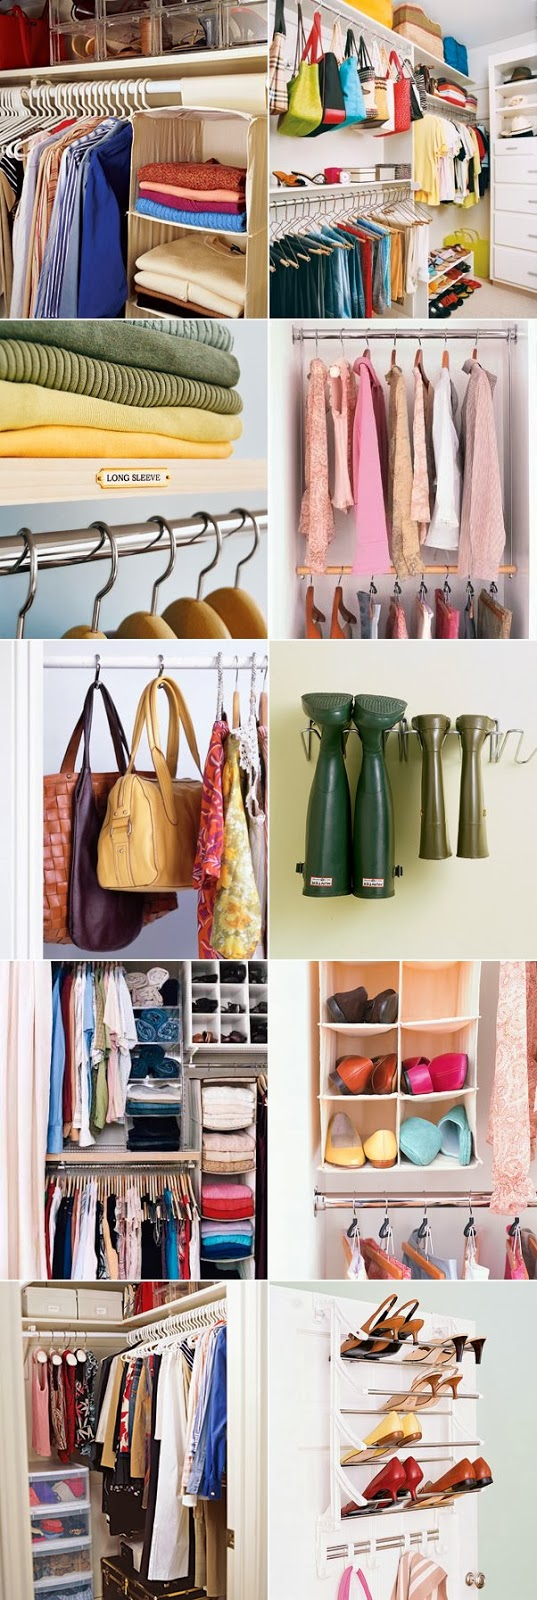 ideas to organize your closet - 31 Tips And Ideas To organize Your Closet DIY Craft Projects